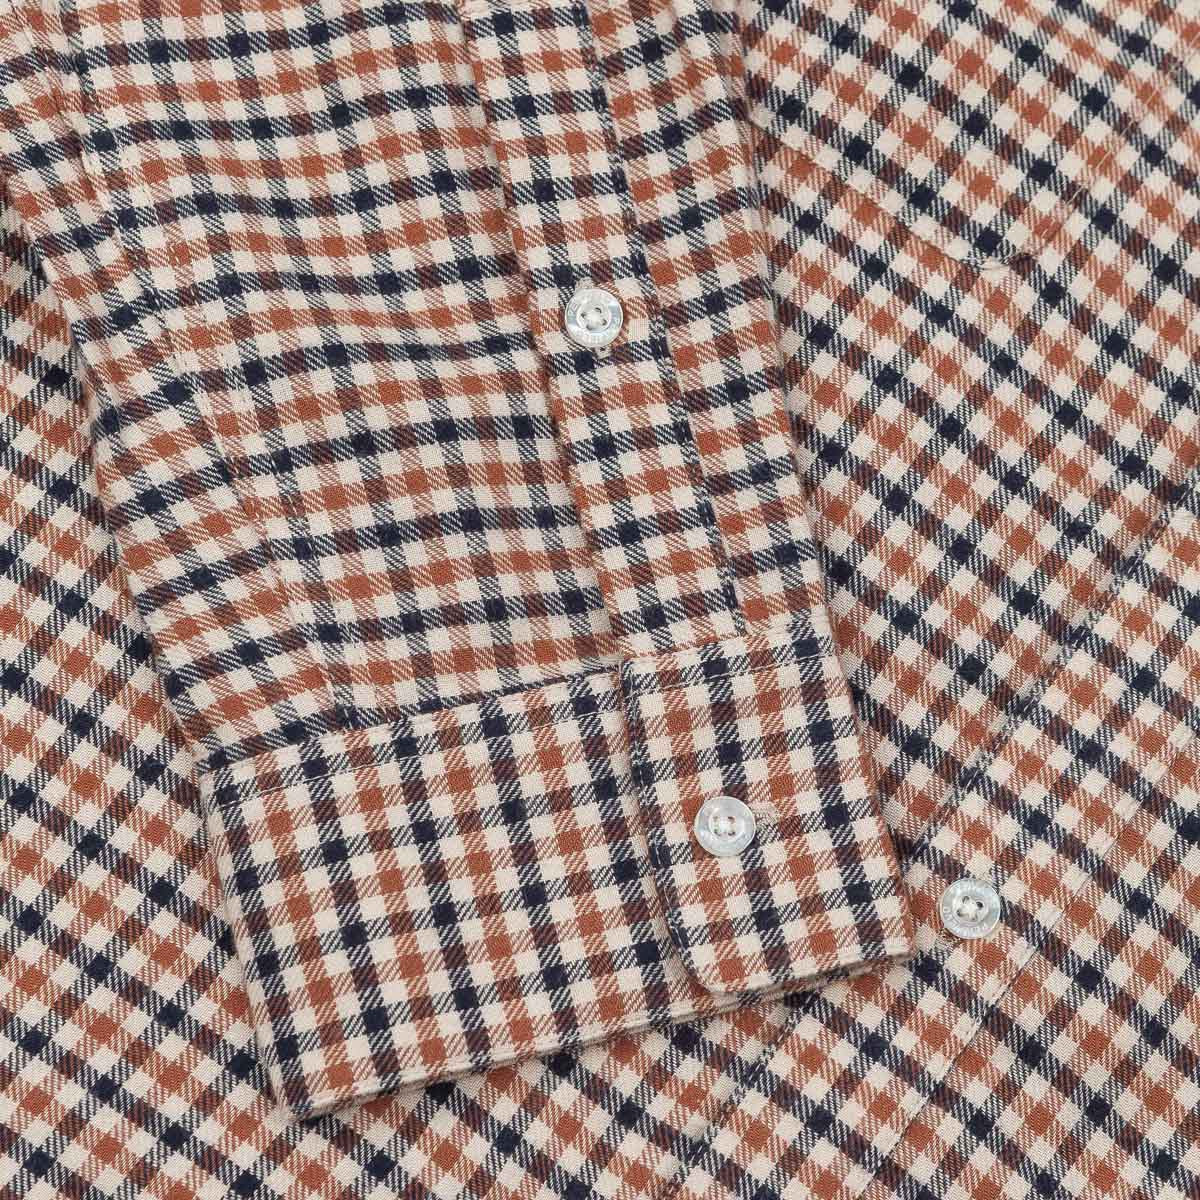 Penfield Ashley Long Sleeve Plaid Shirt - Brown